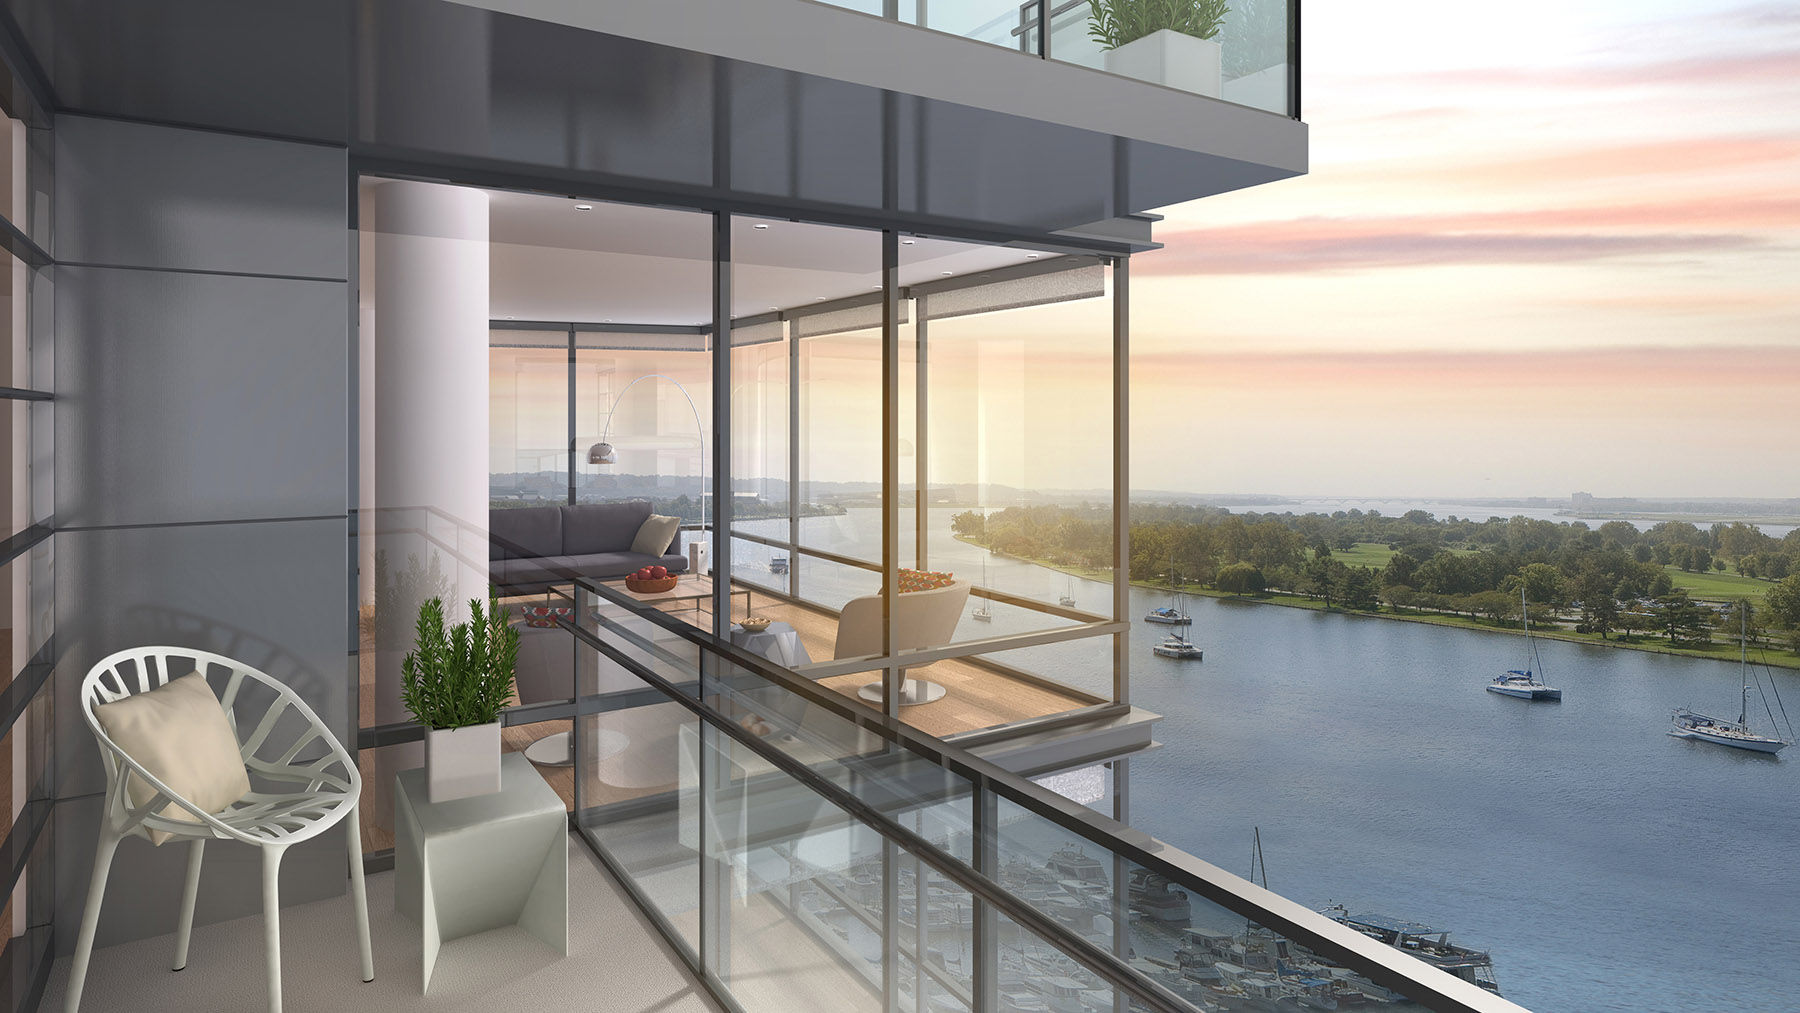 This artists rendering shows the view from a balcony in the VIO condo building, one of two condominiums on site of The Wharf, the mile-long redevelopment of the Southwest Waterfront, set for its grand opening next month. The property also features two apartment buildings providing 900 housing units. An estimated 2,000 people will live in the complex. (Courtesy PN Hoffman)